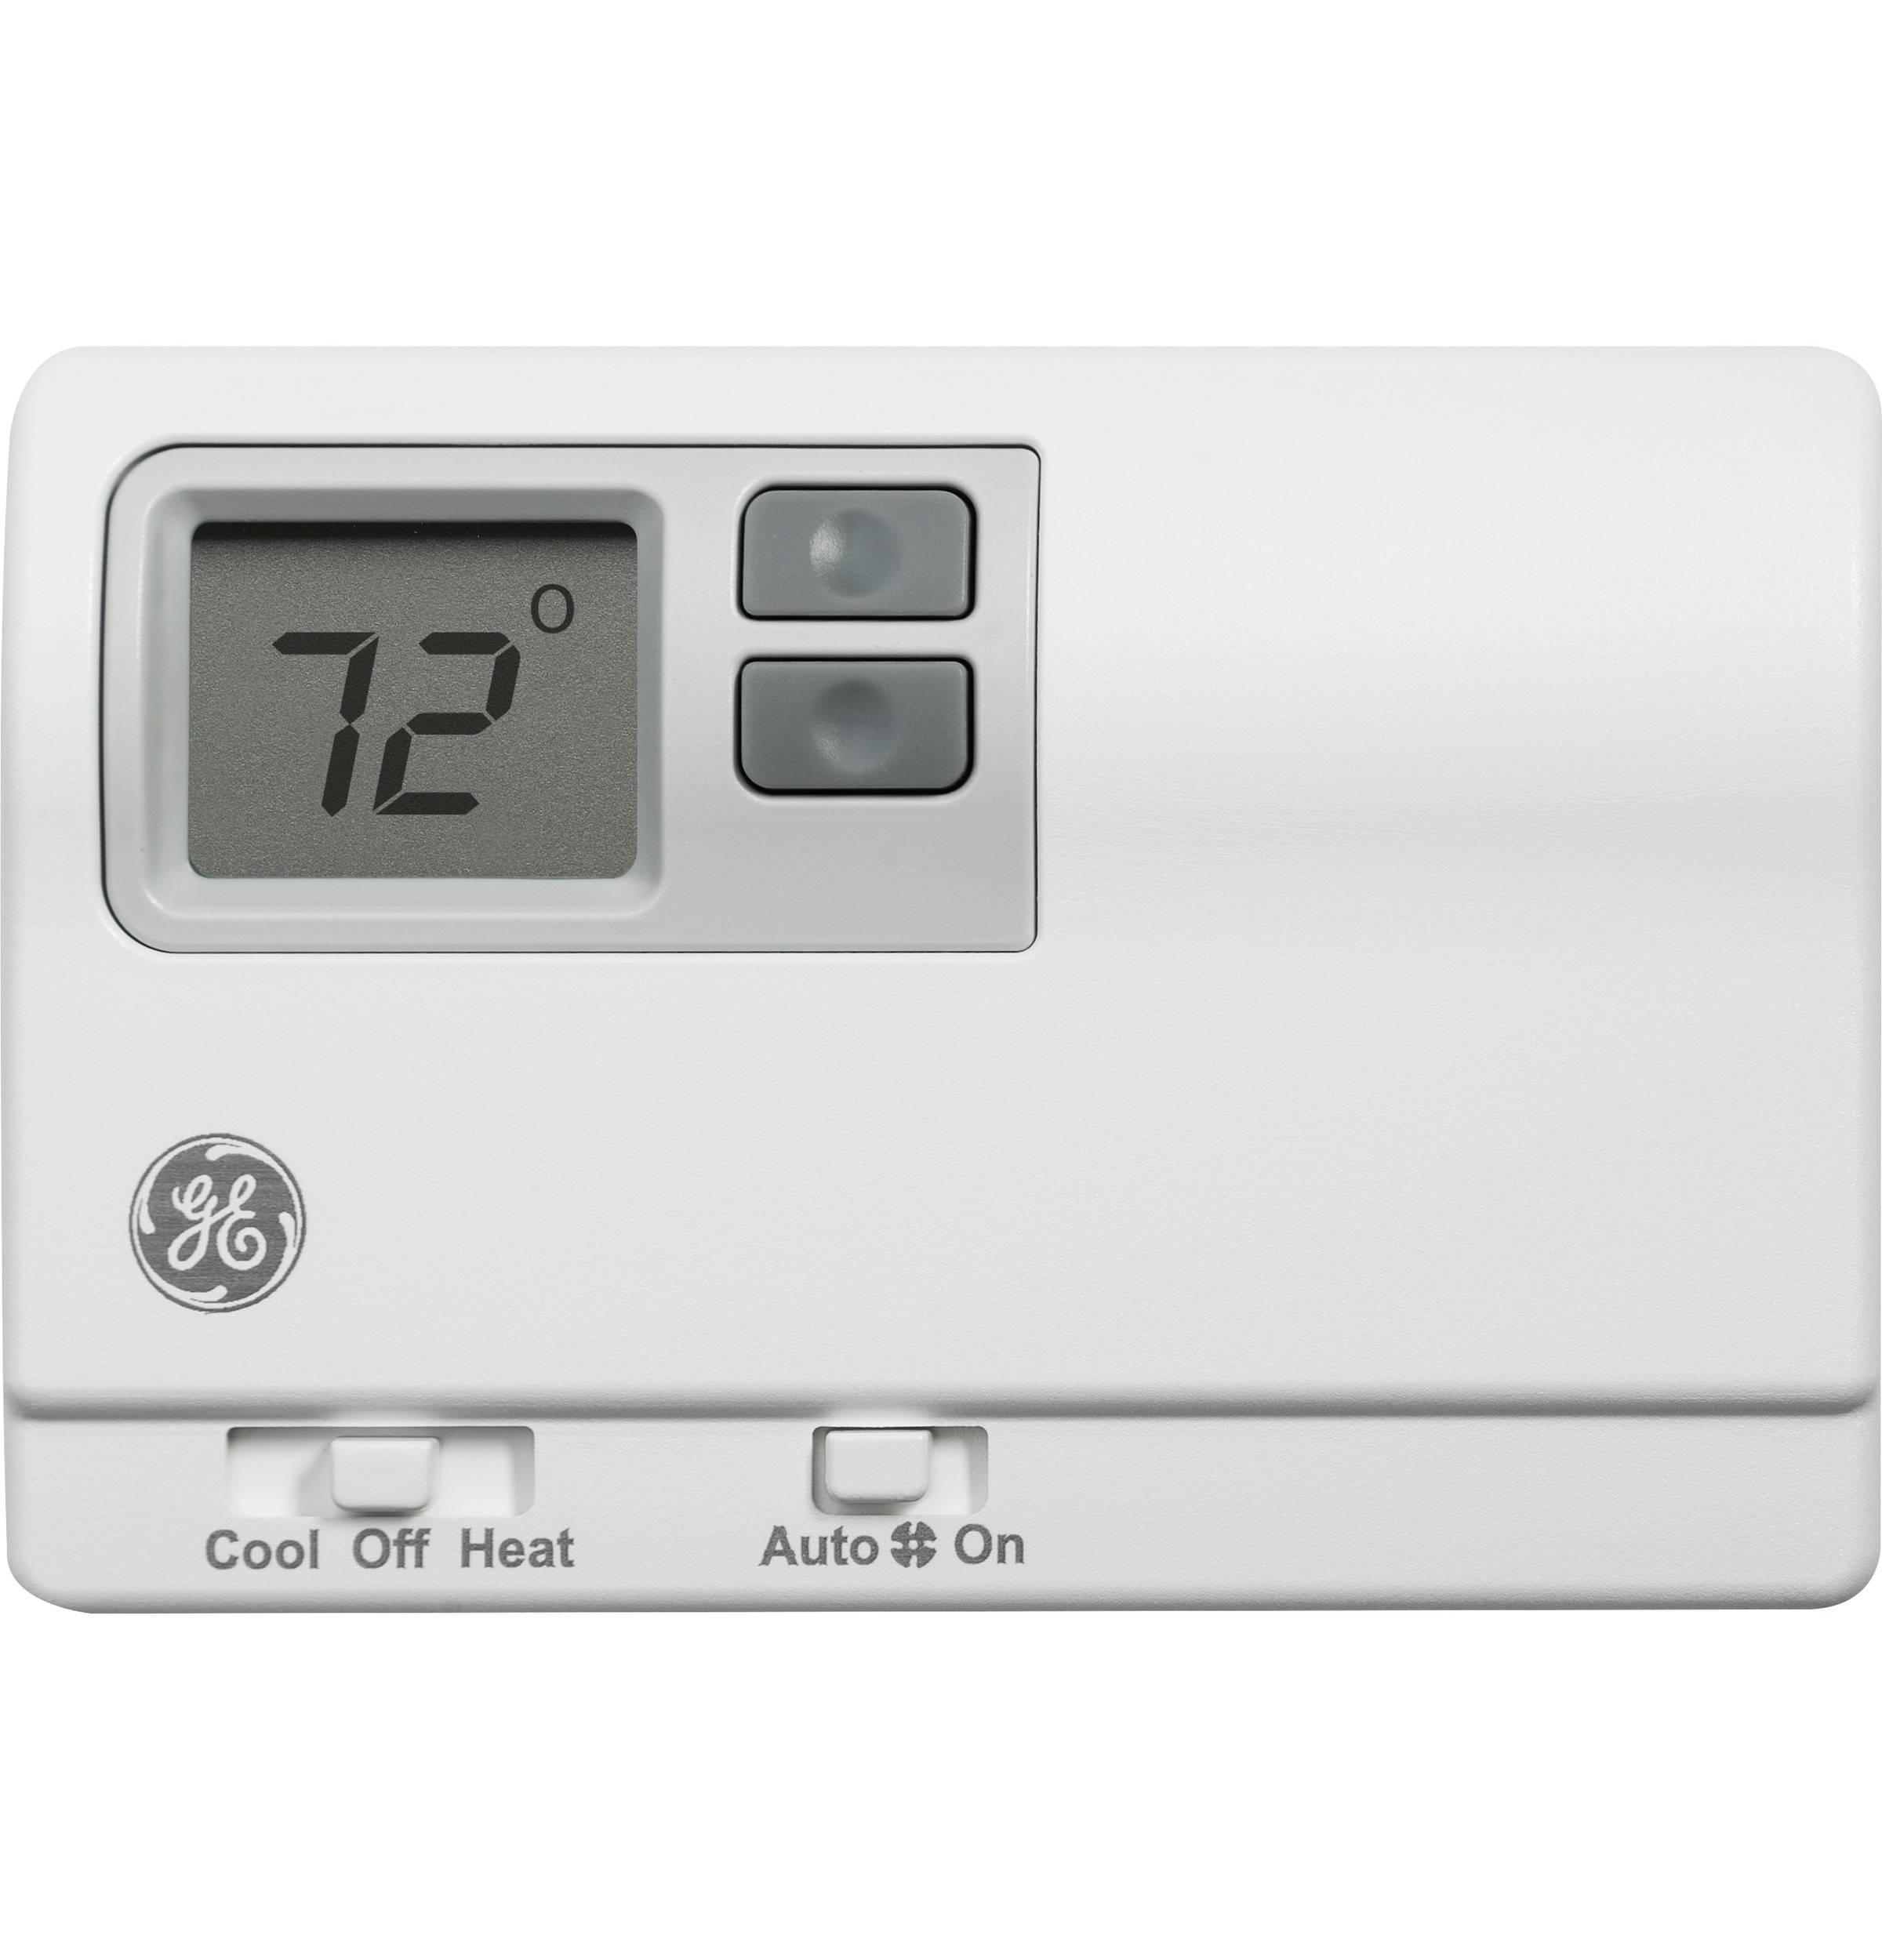 rak148d2 zoneline digital remote thermostat ge parts product image product image